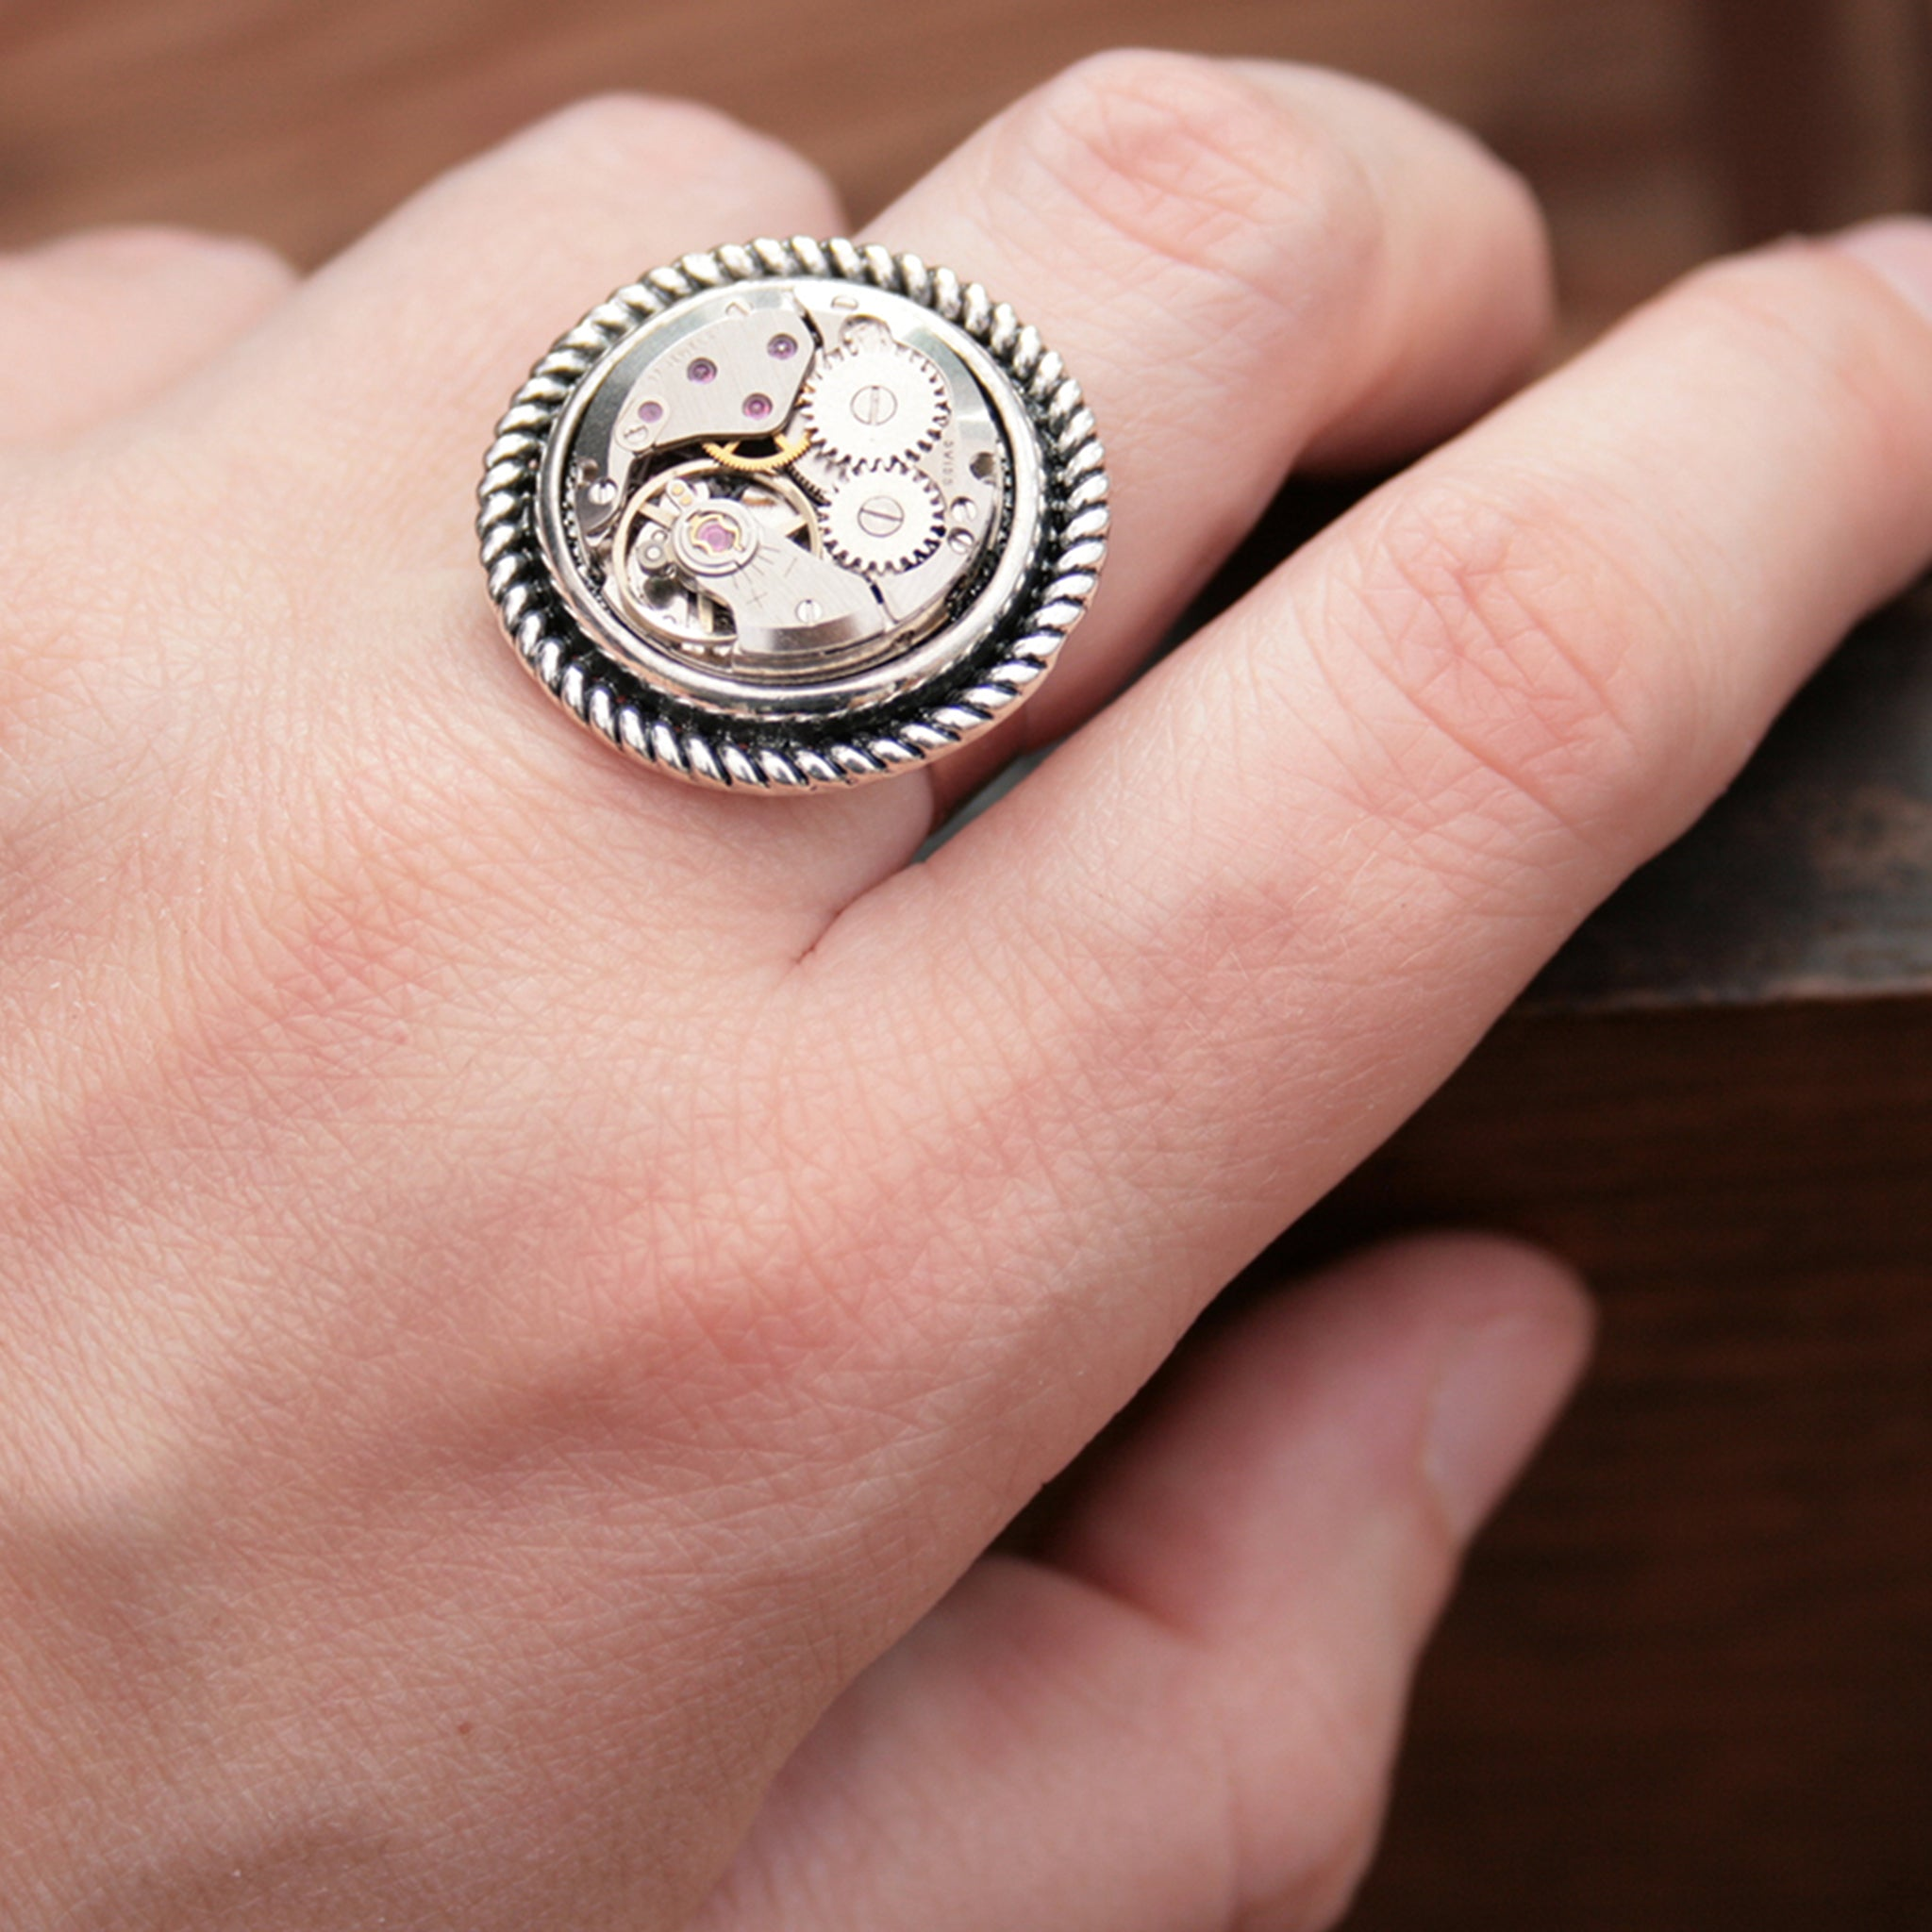 Steampunk Ring for Her made of watch work on hand